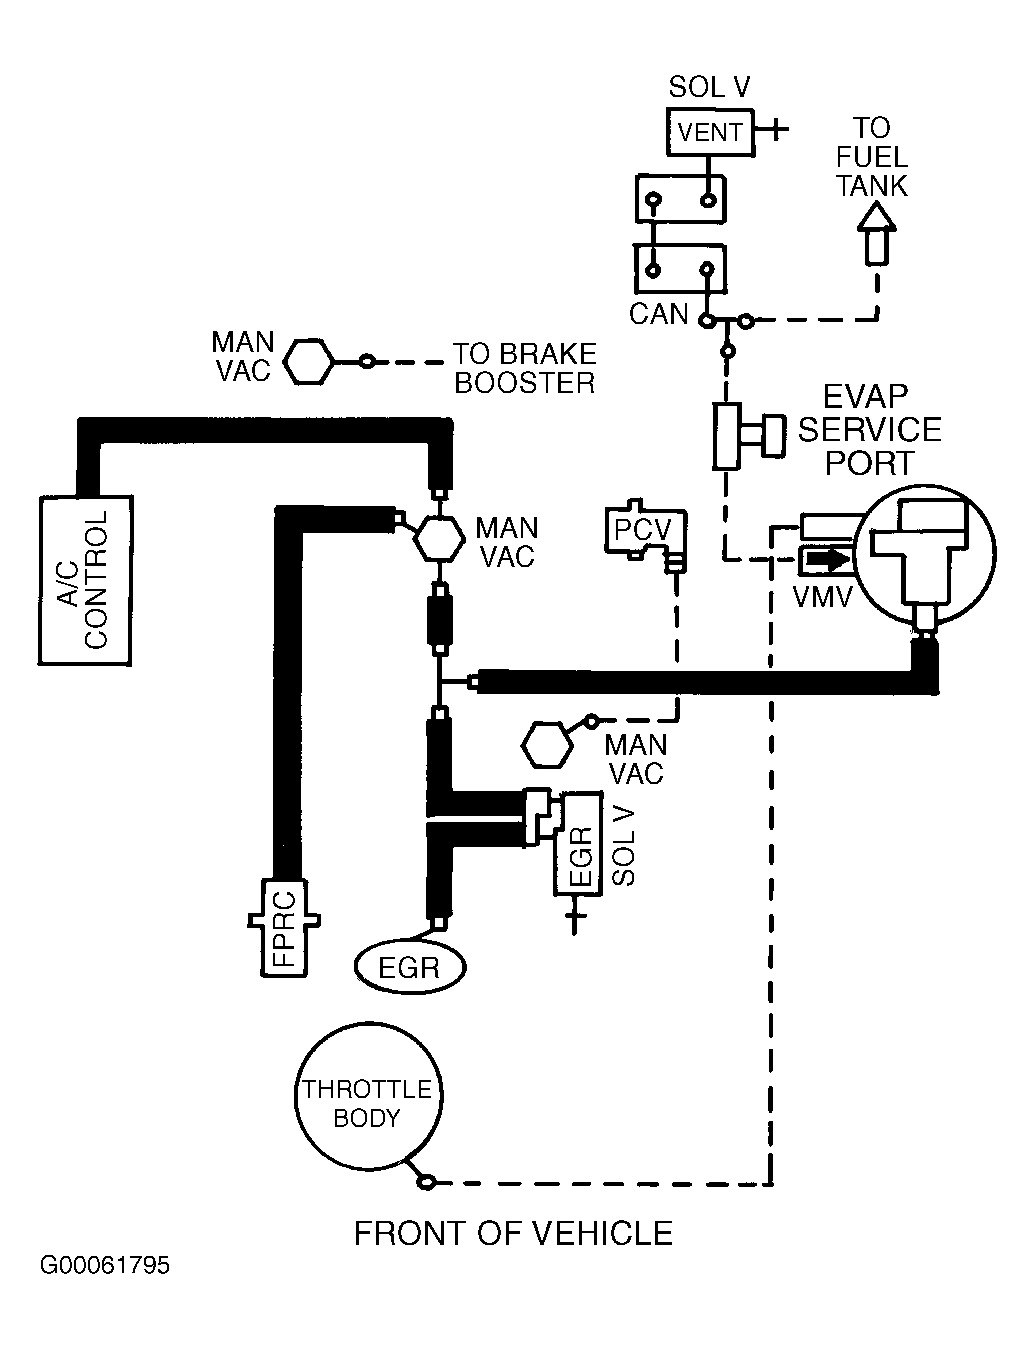 2007 Ford Explorer Sport Trac Fuse Diagram. Ford. Wiring